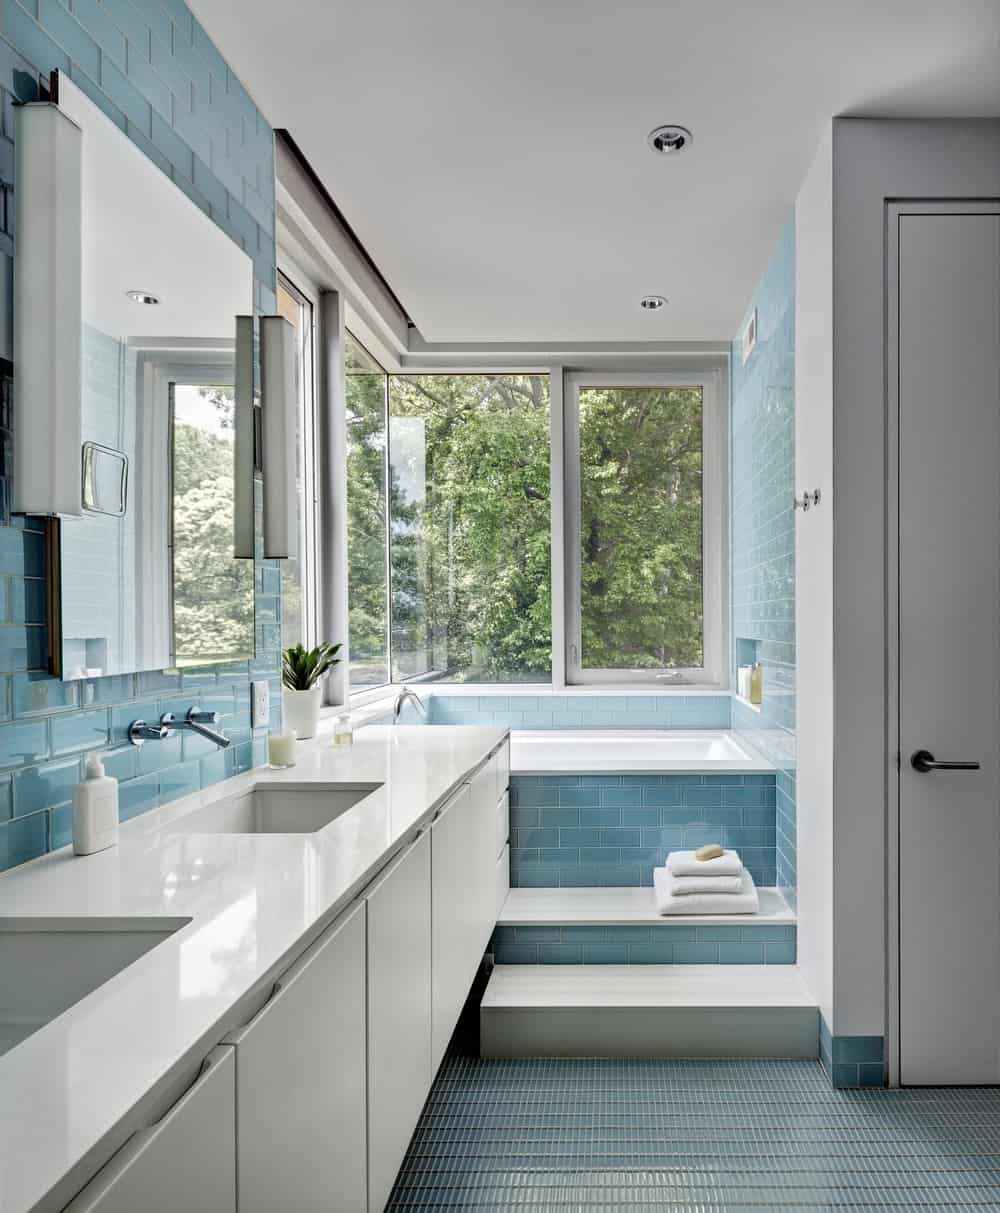 With its blue-tiled steps and sunken bath tub, this bathroom gives the illusion of a swimming pool. The window next to the bathtub shows a stunning view of the outside, making this bathroom the perfect place for a relaxing spa-like afternoon.